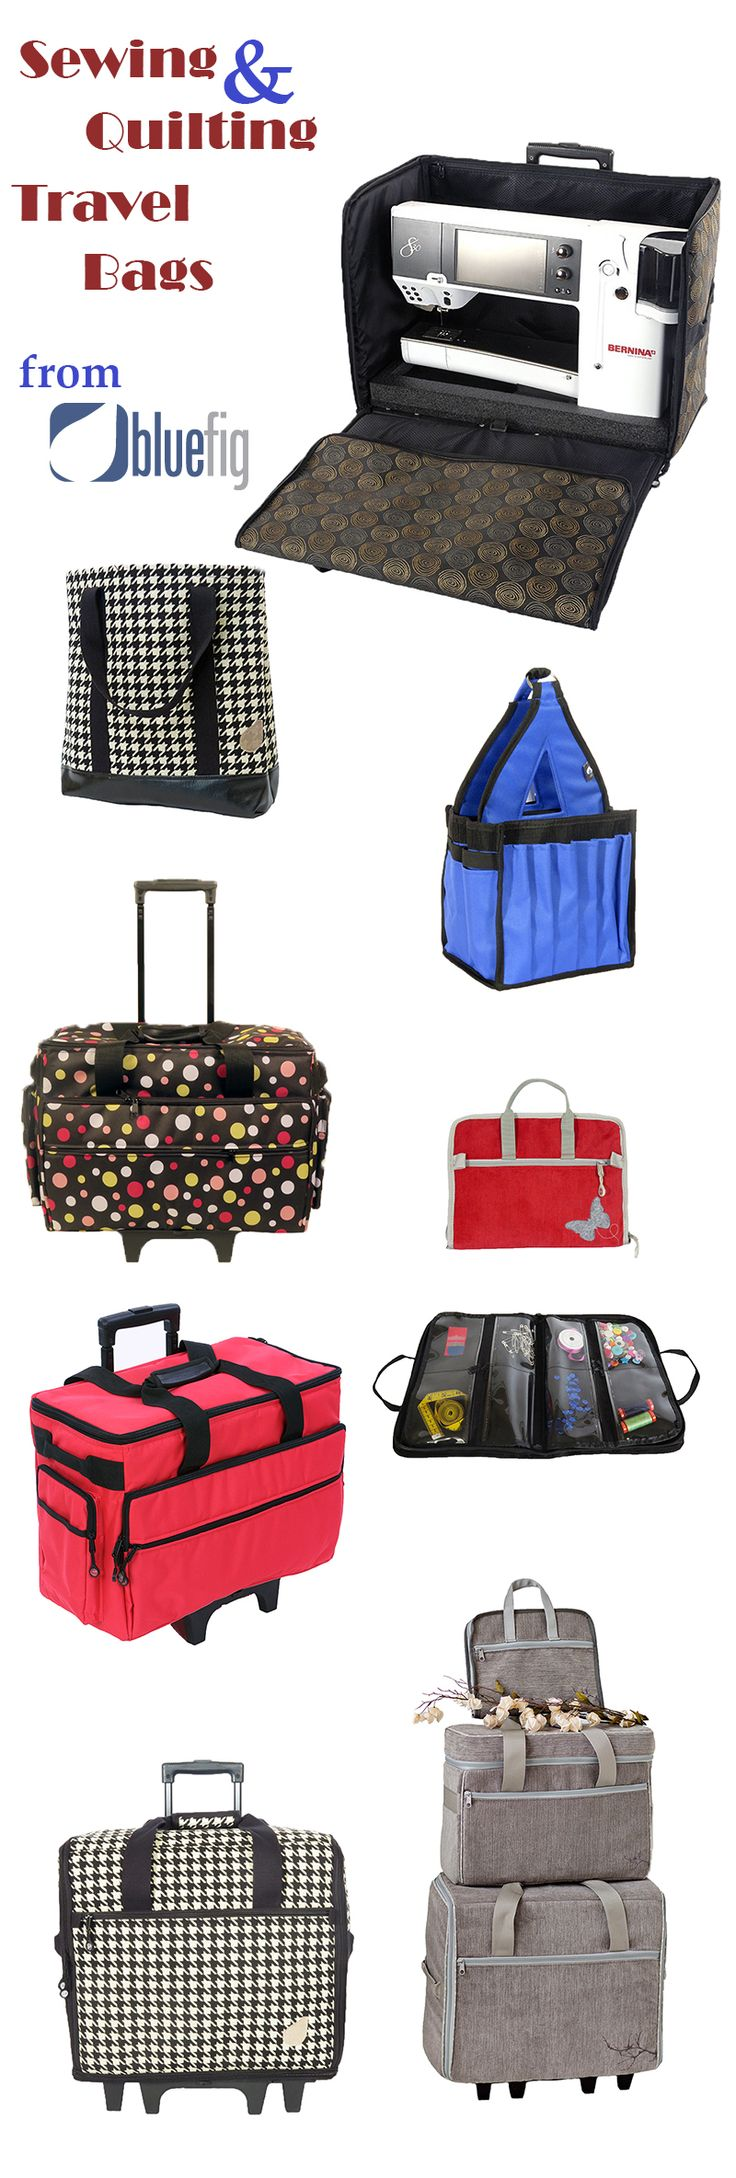 Bluefig on sale sewing machine bags embroidery arm